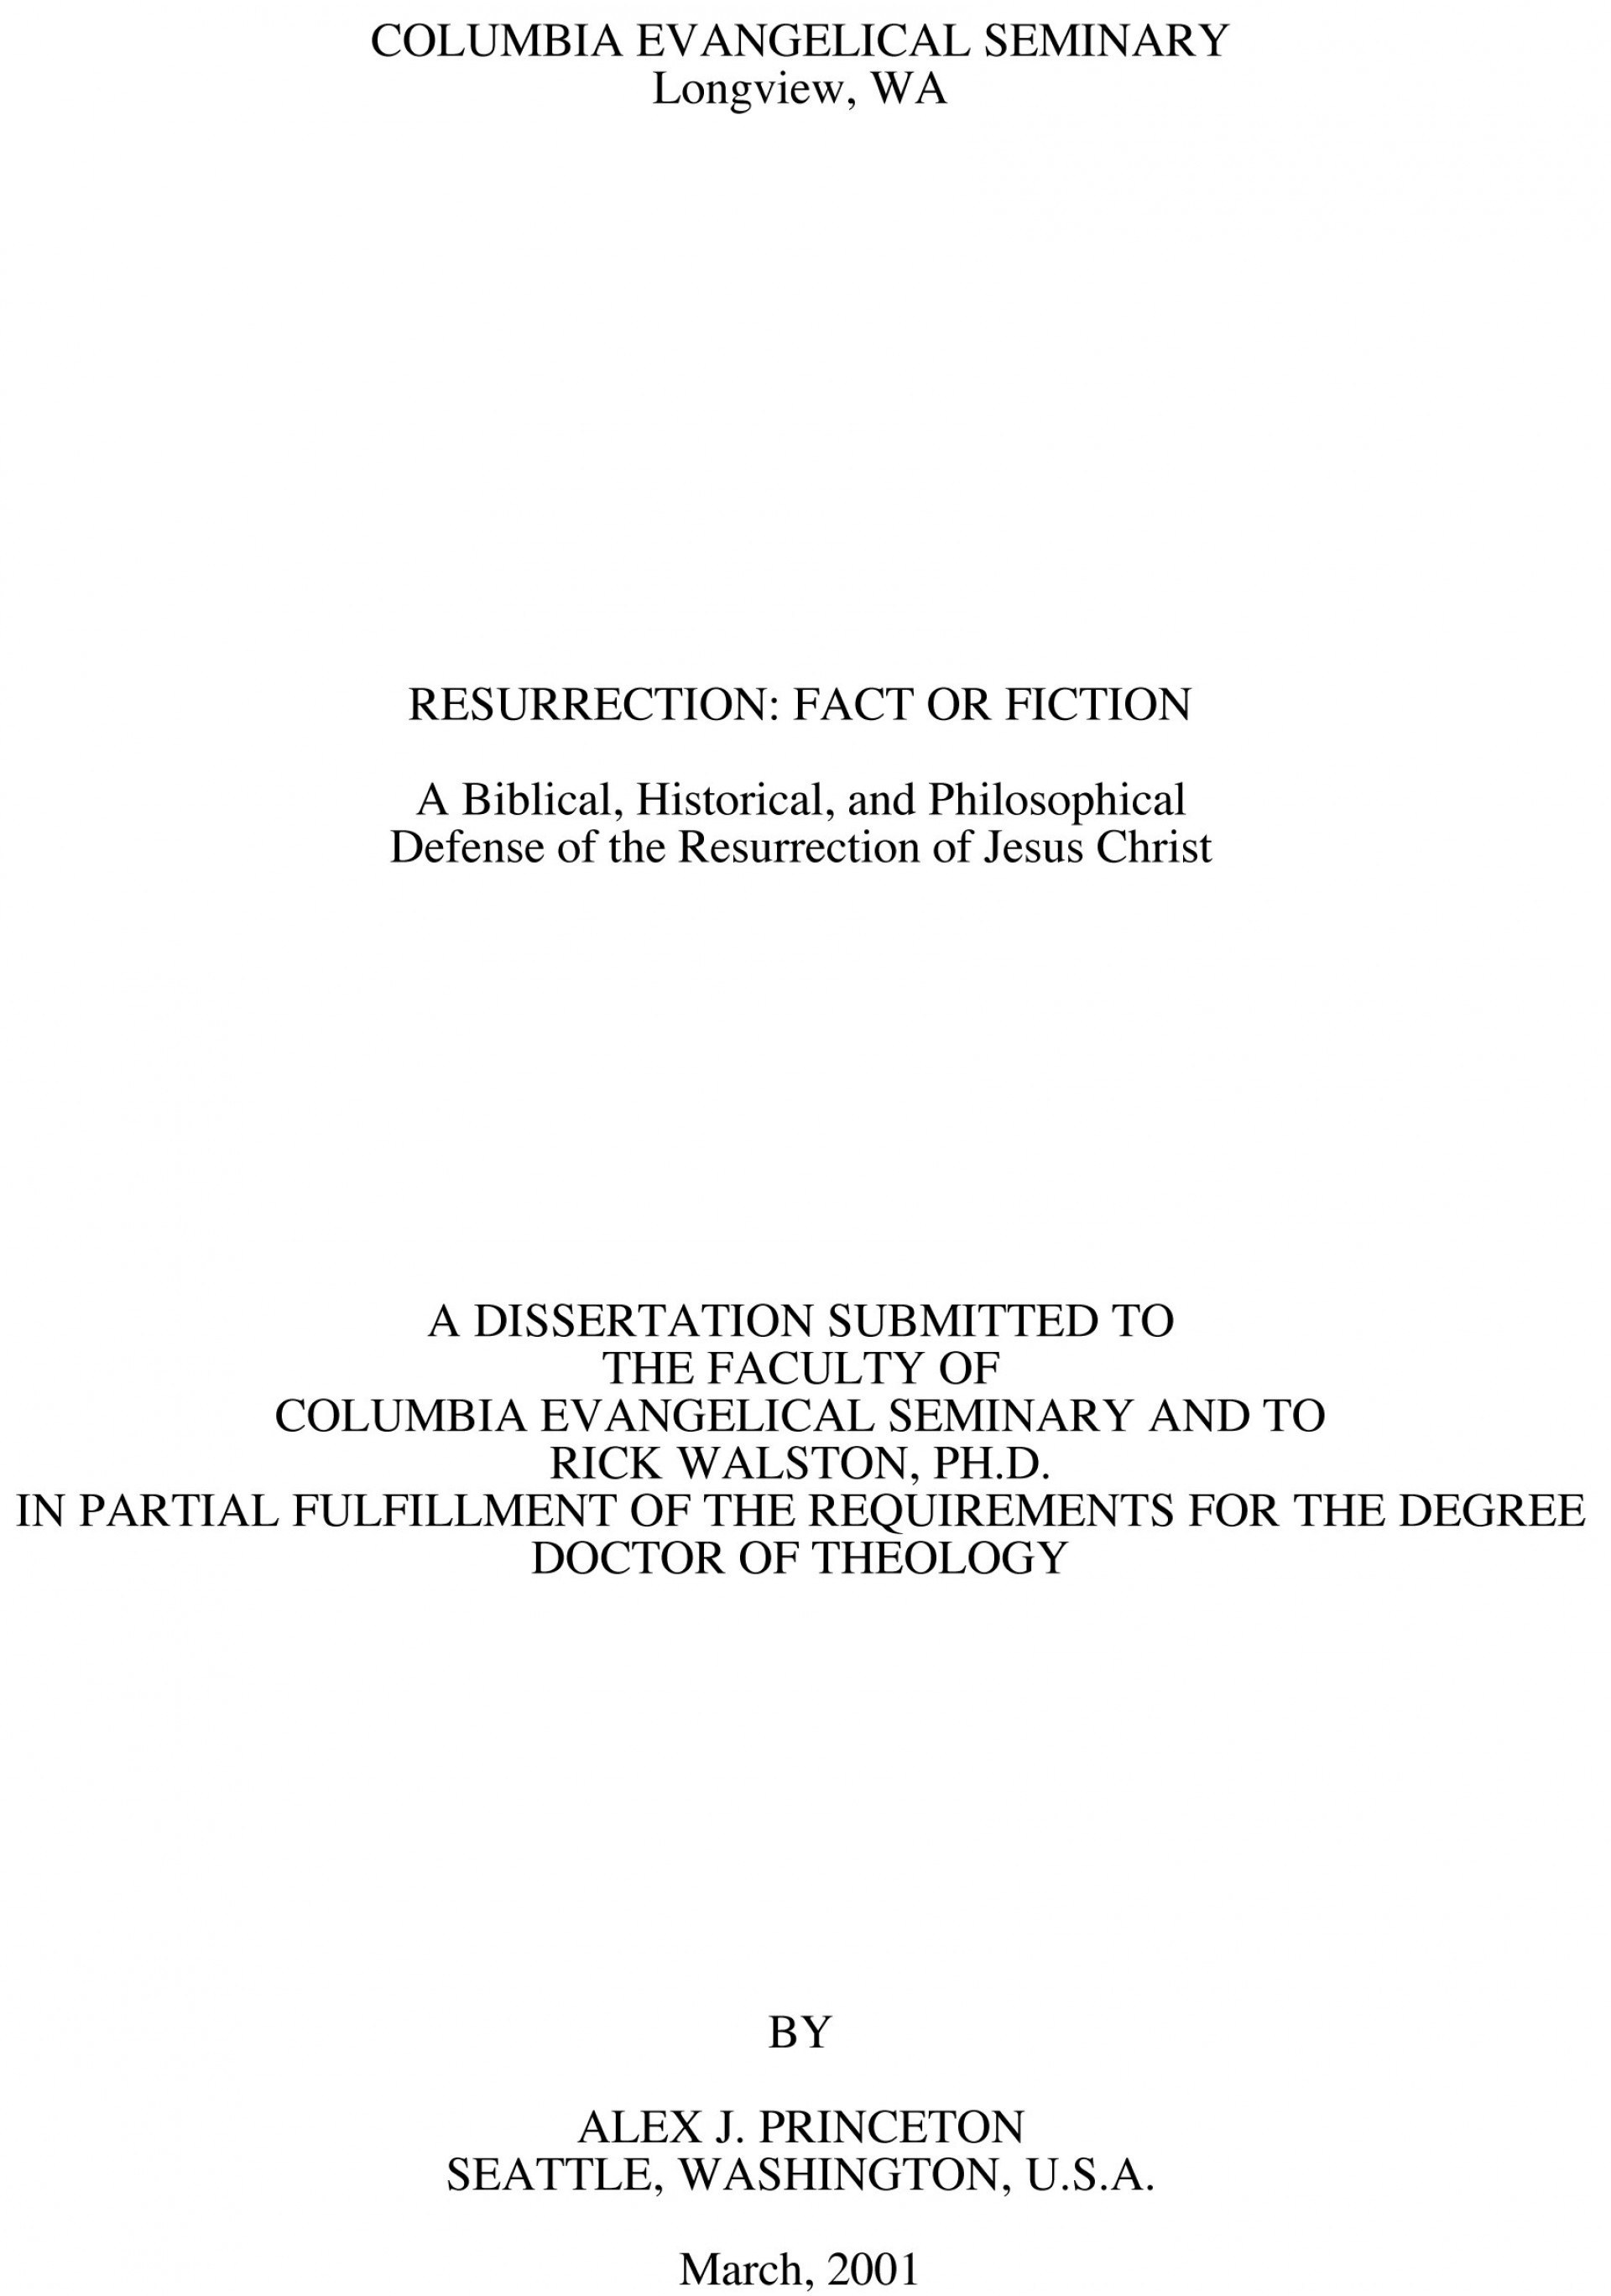 018 Example Of Research Paper Conclusion Astounding Conclusions In About Smoking 1920